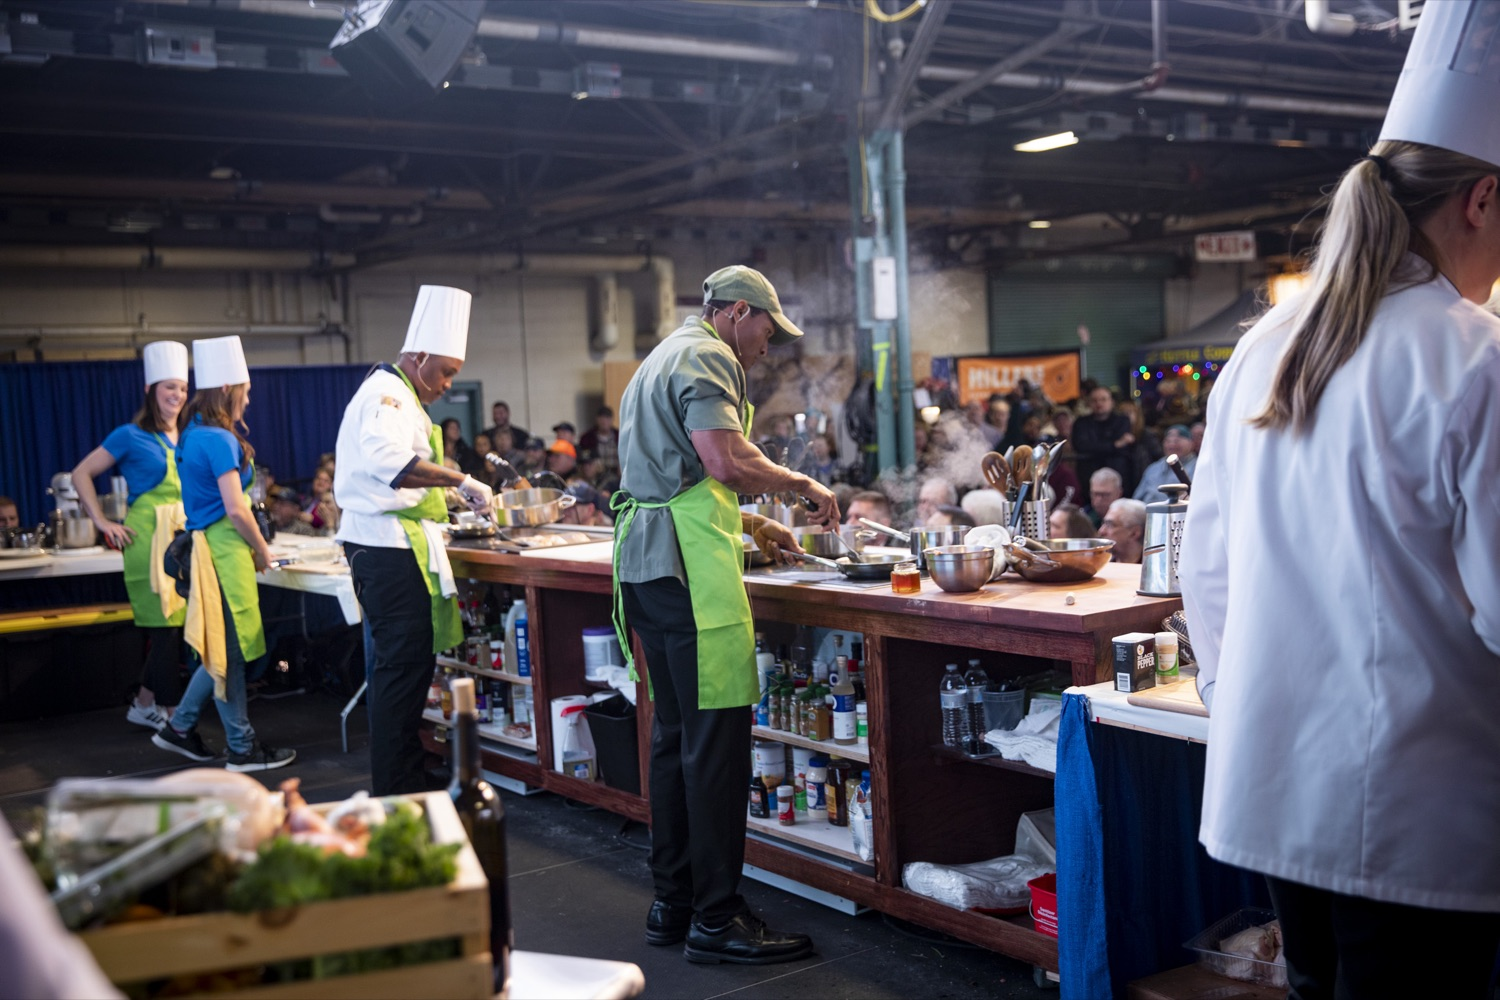 "<a href=""https://filesource.wostreaming.net/commonwealthofpa/photo/17651_AGRIC_ARMY_NAVY_COOKOFF_CZ_10.jpg"" target=""_blank"">⇣ Download Photo<br></a>Culinary Specialist First Class Marlon ONeil Haughton and Sergeant Pete O. Linton, Advanced Culinary NCO of the Army, compete in the 2020 Army vs. Navy Cook-Off in Harrisburg on January 9, 2020."